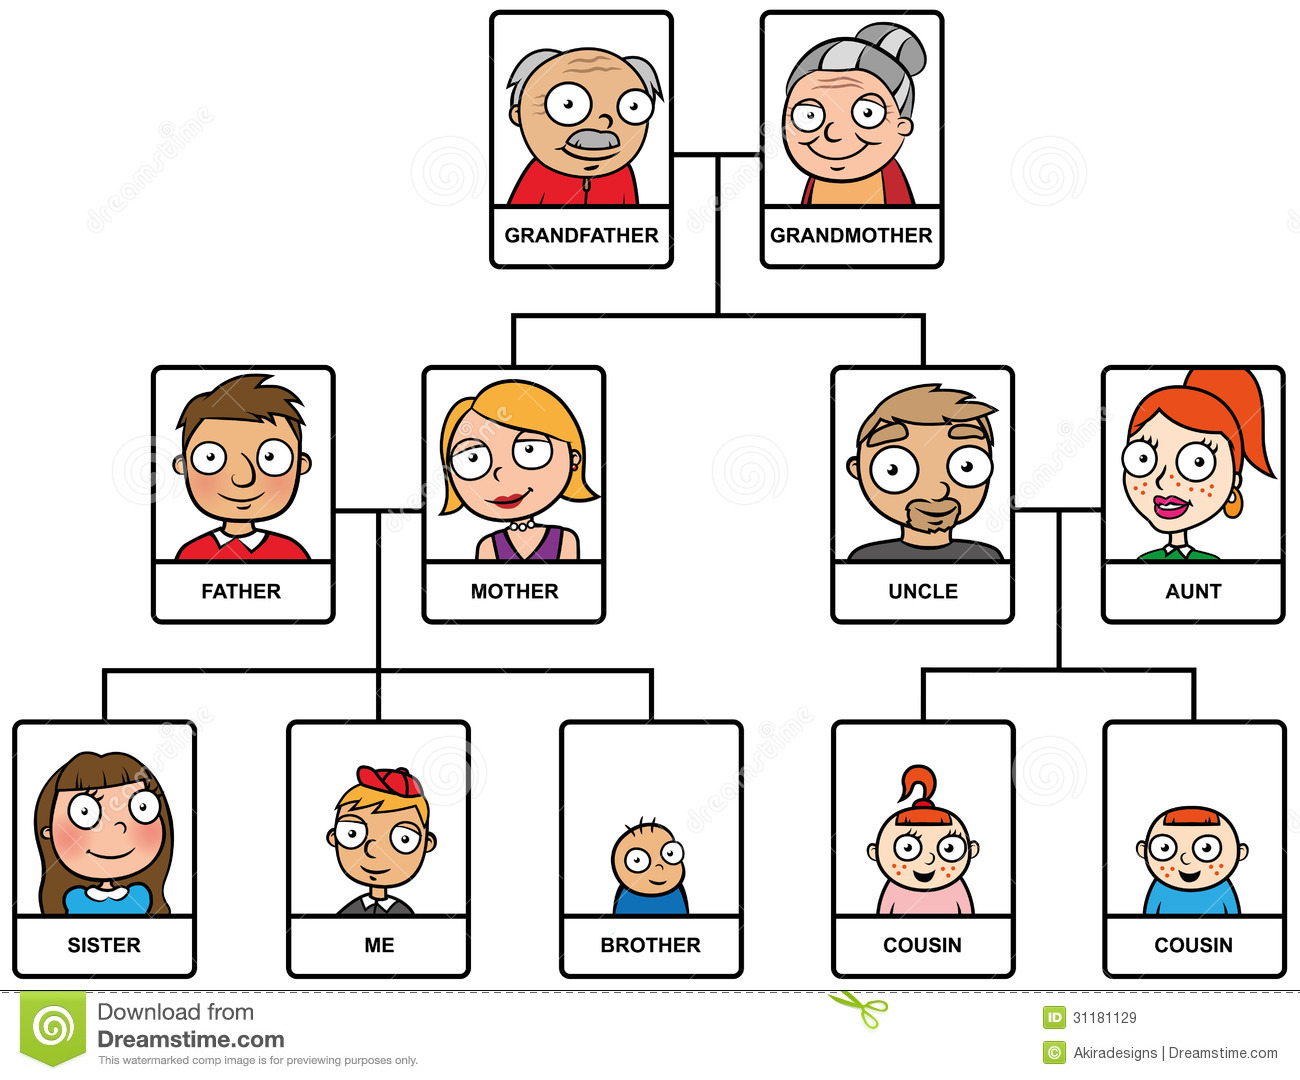 French Cartoon Family Tree